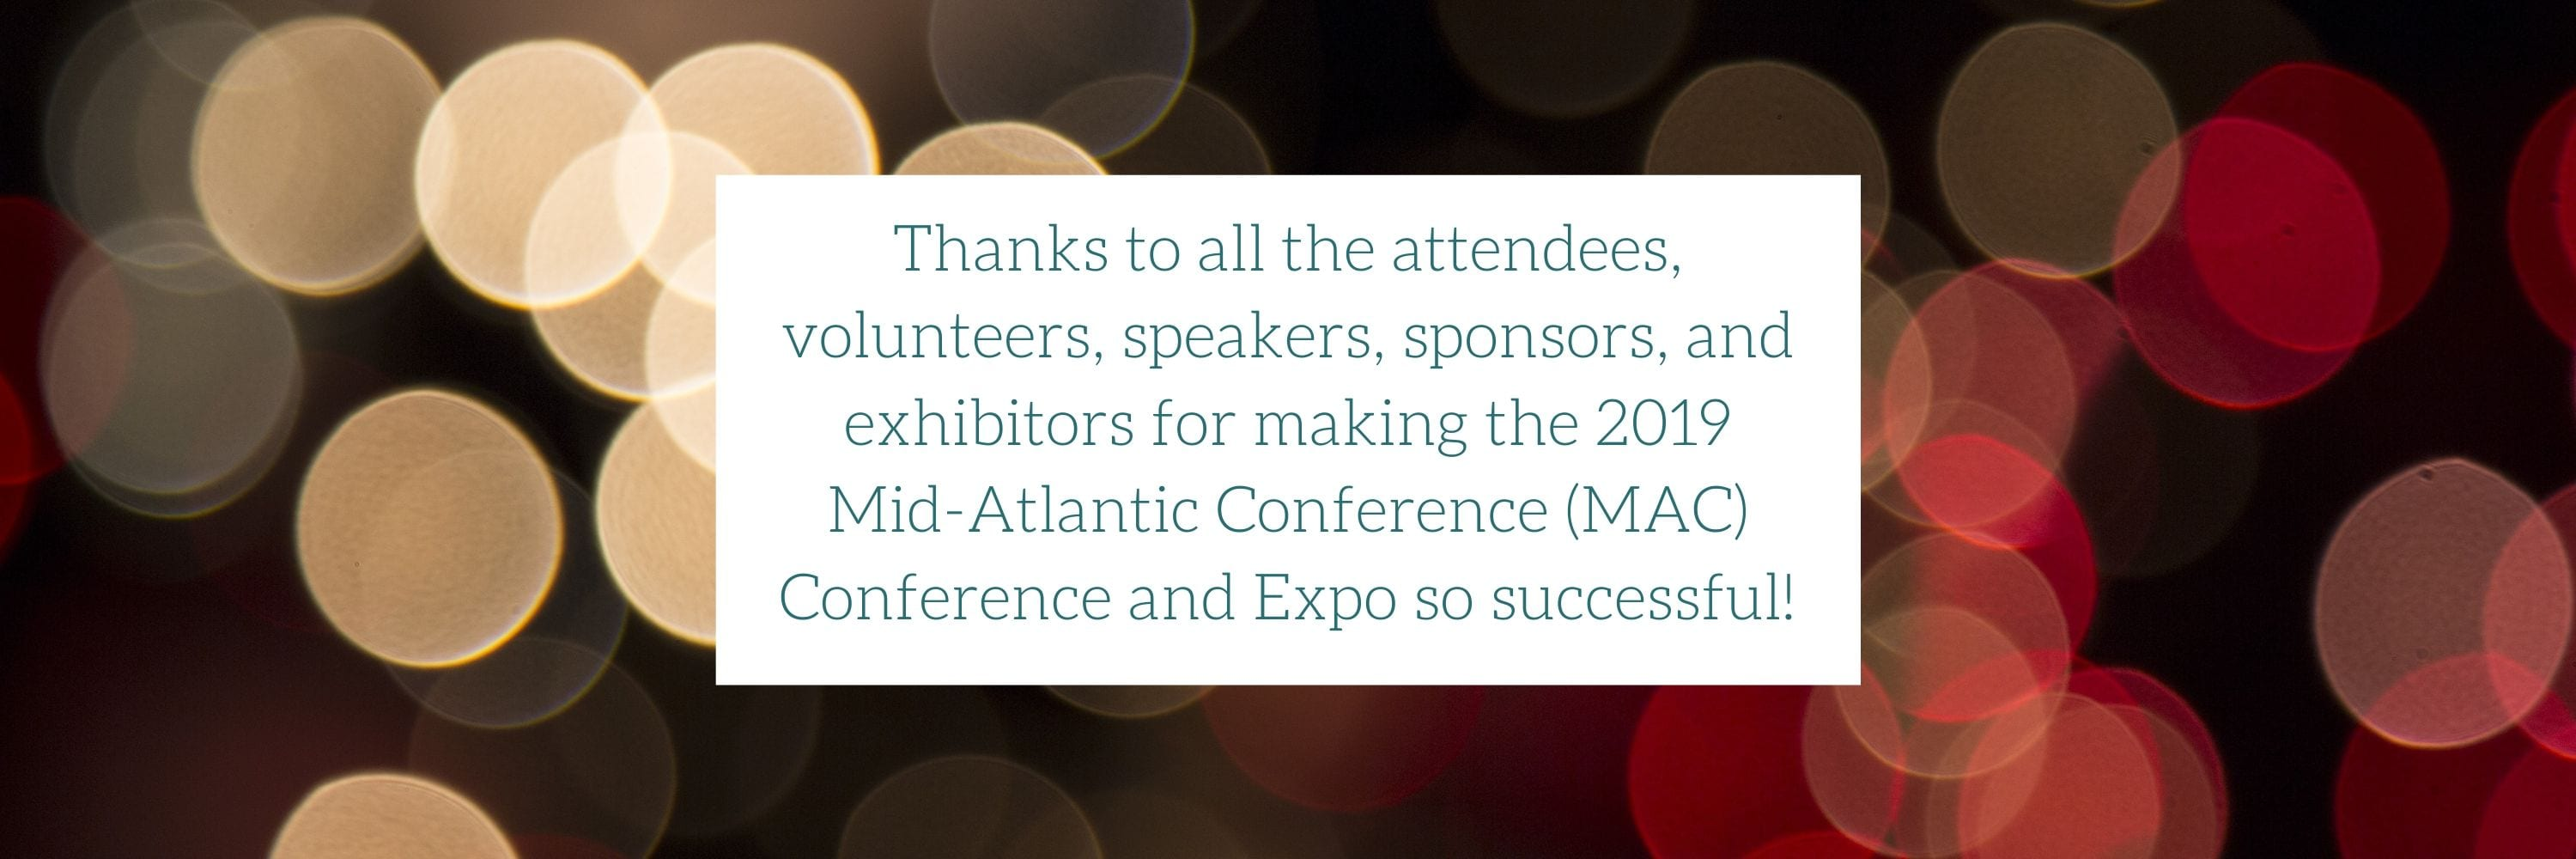 Thanks You 2019 MAC Conference